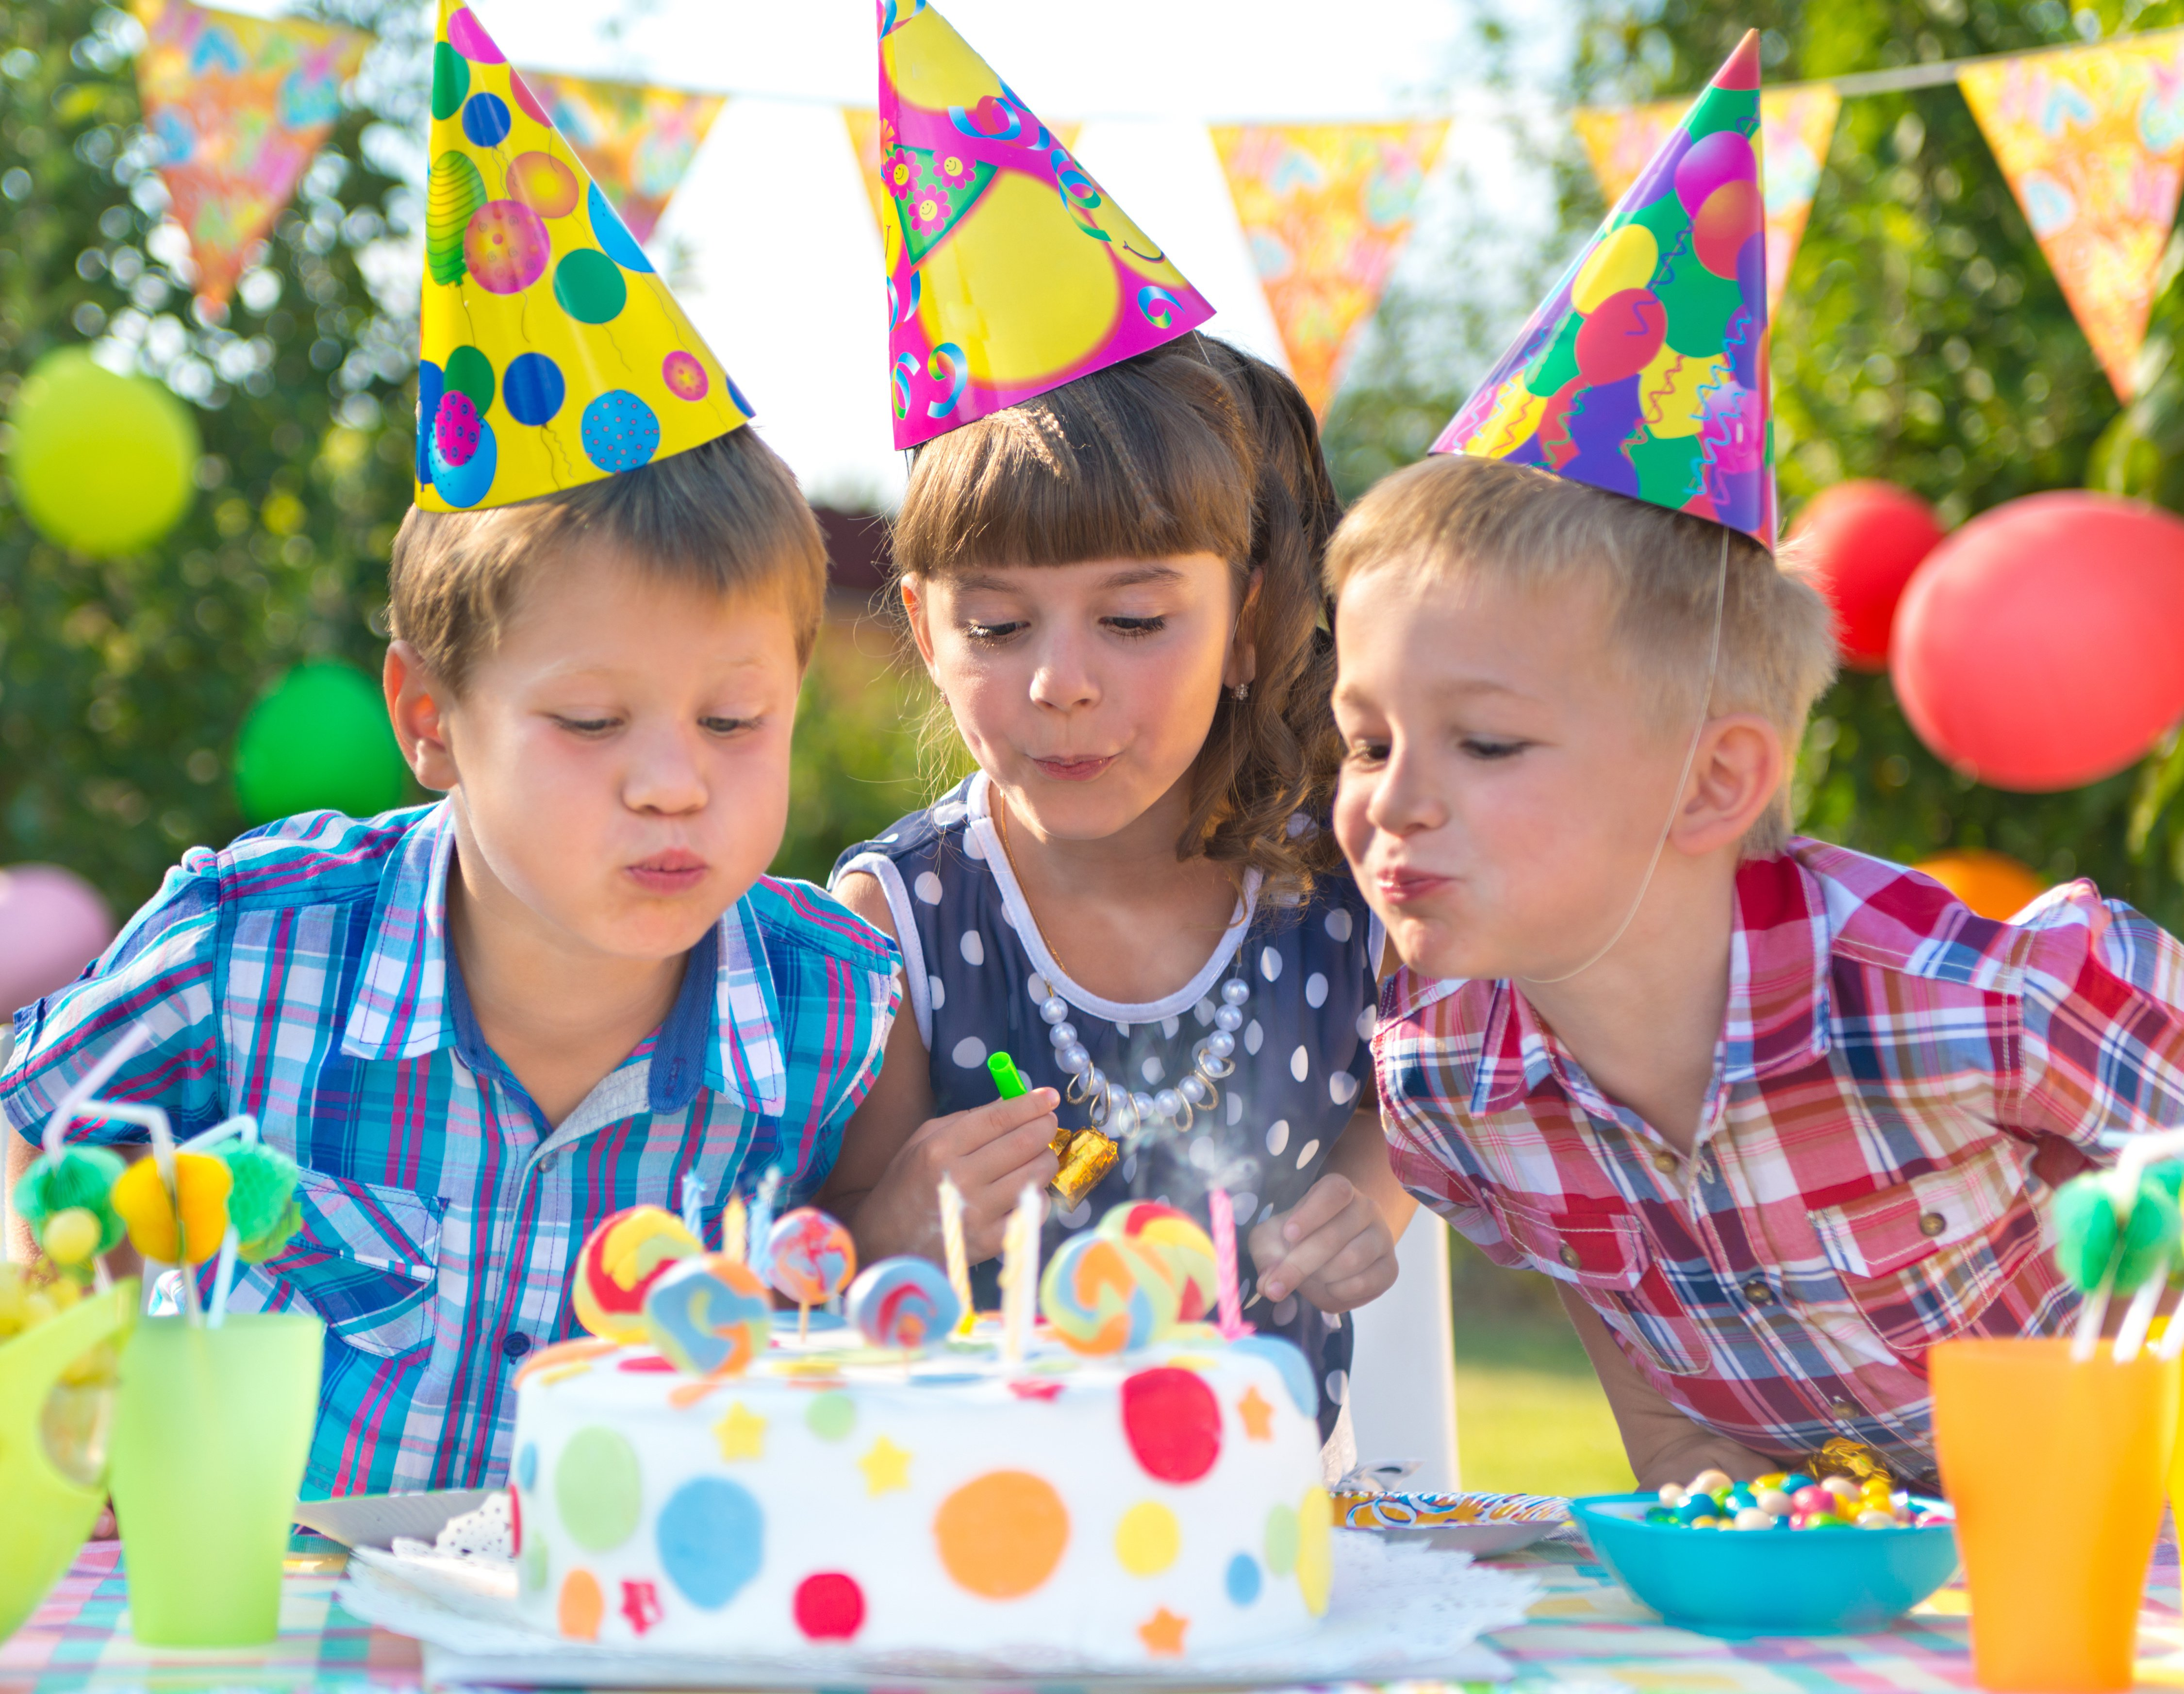 How to De-stress Birthday Parties